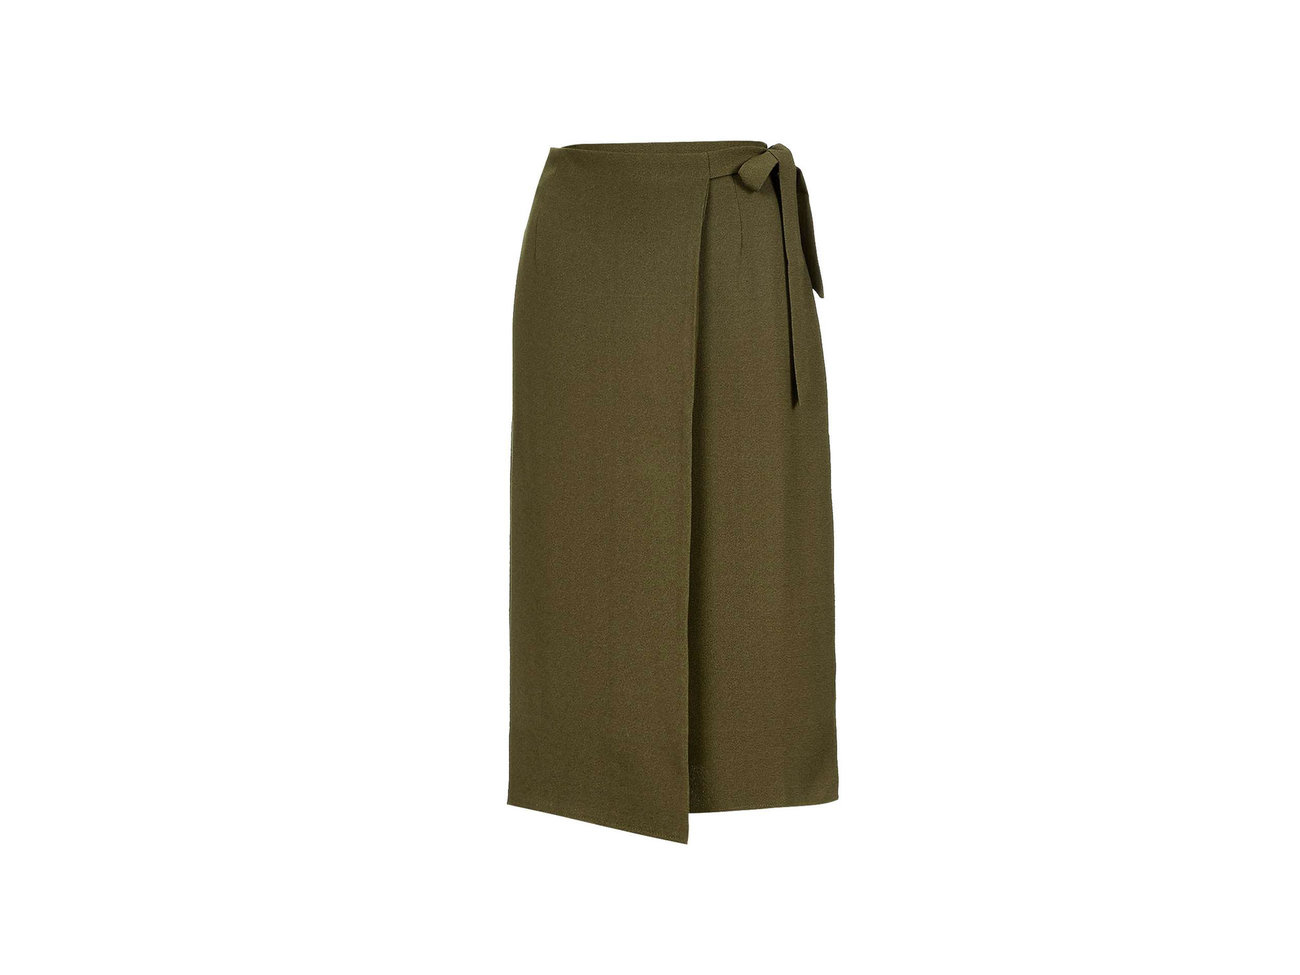 Topshop-two-SKIRT0816.jpg